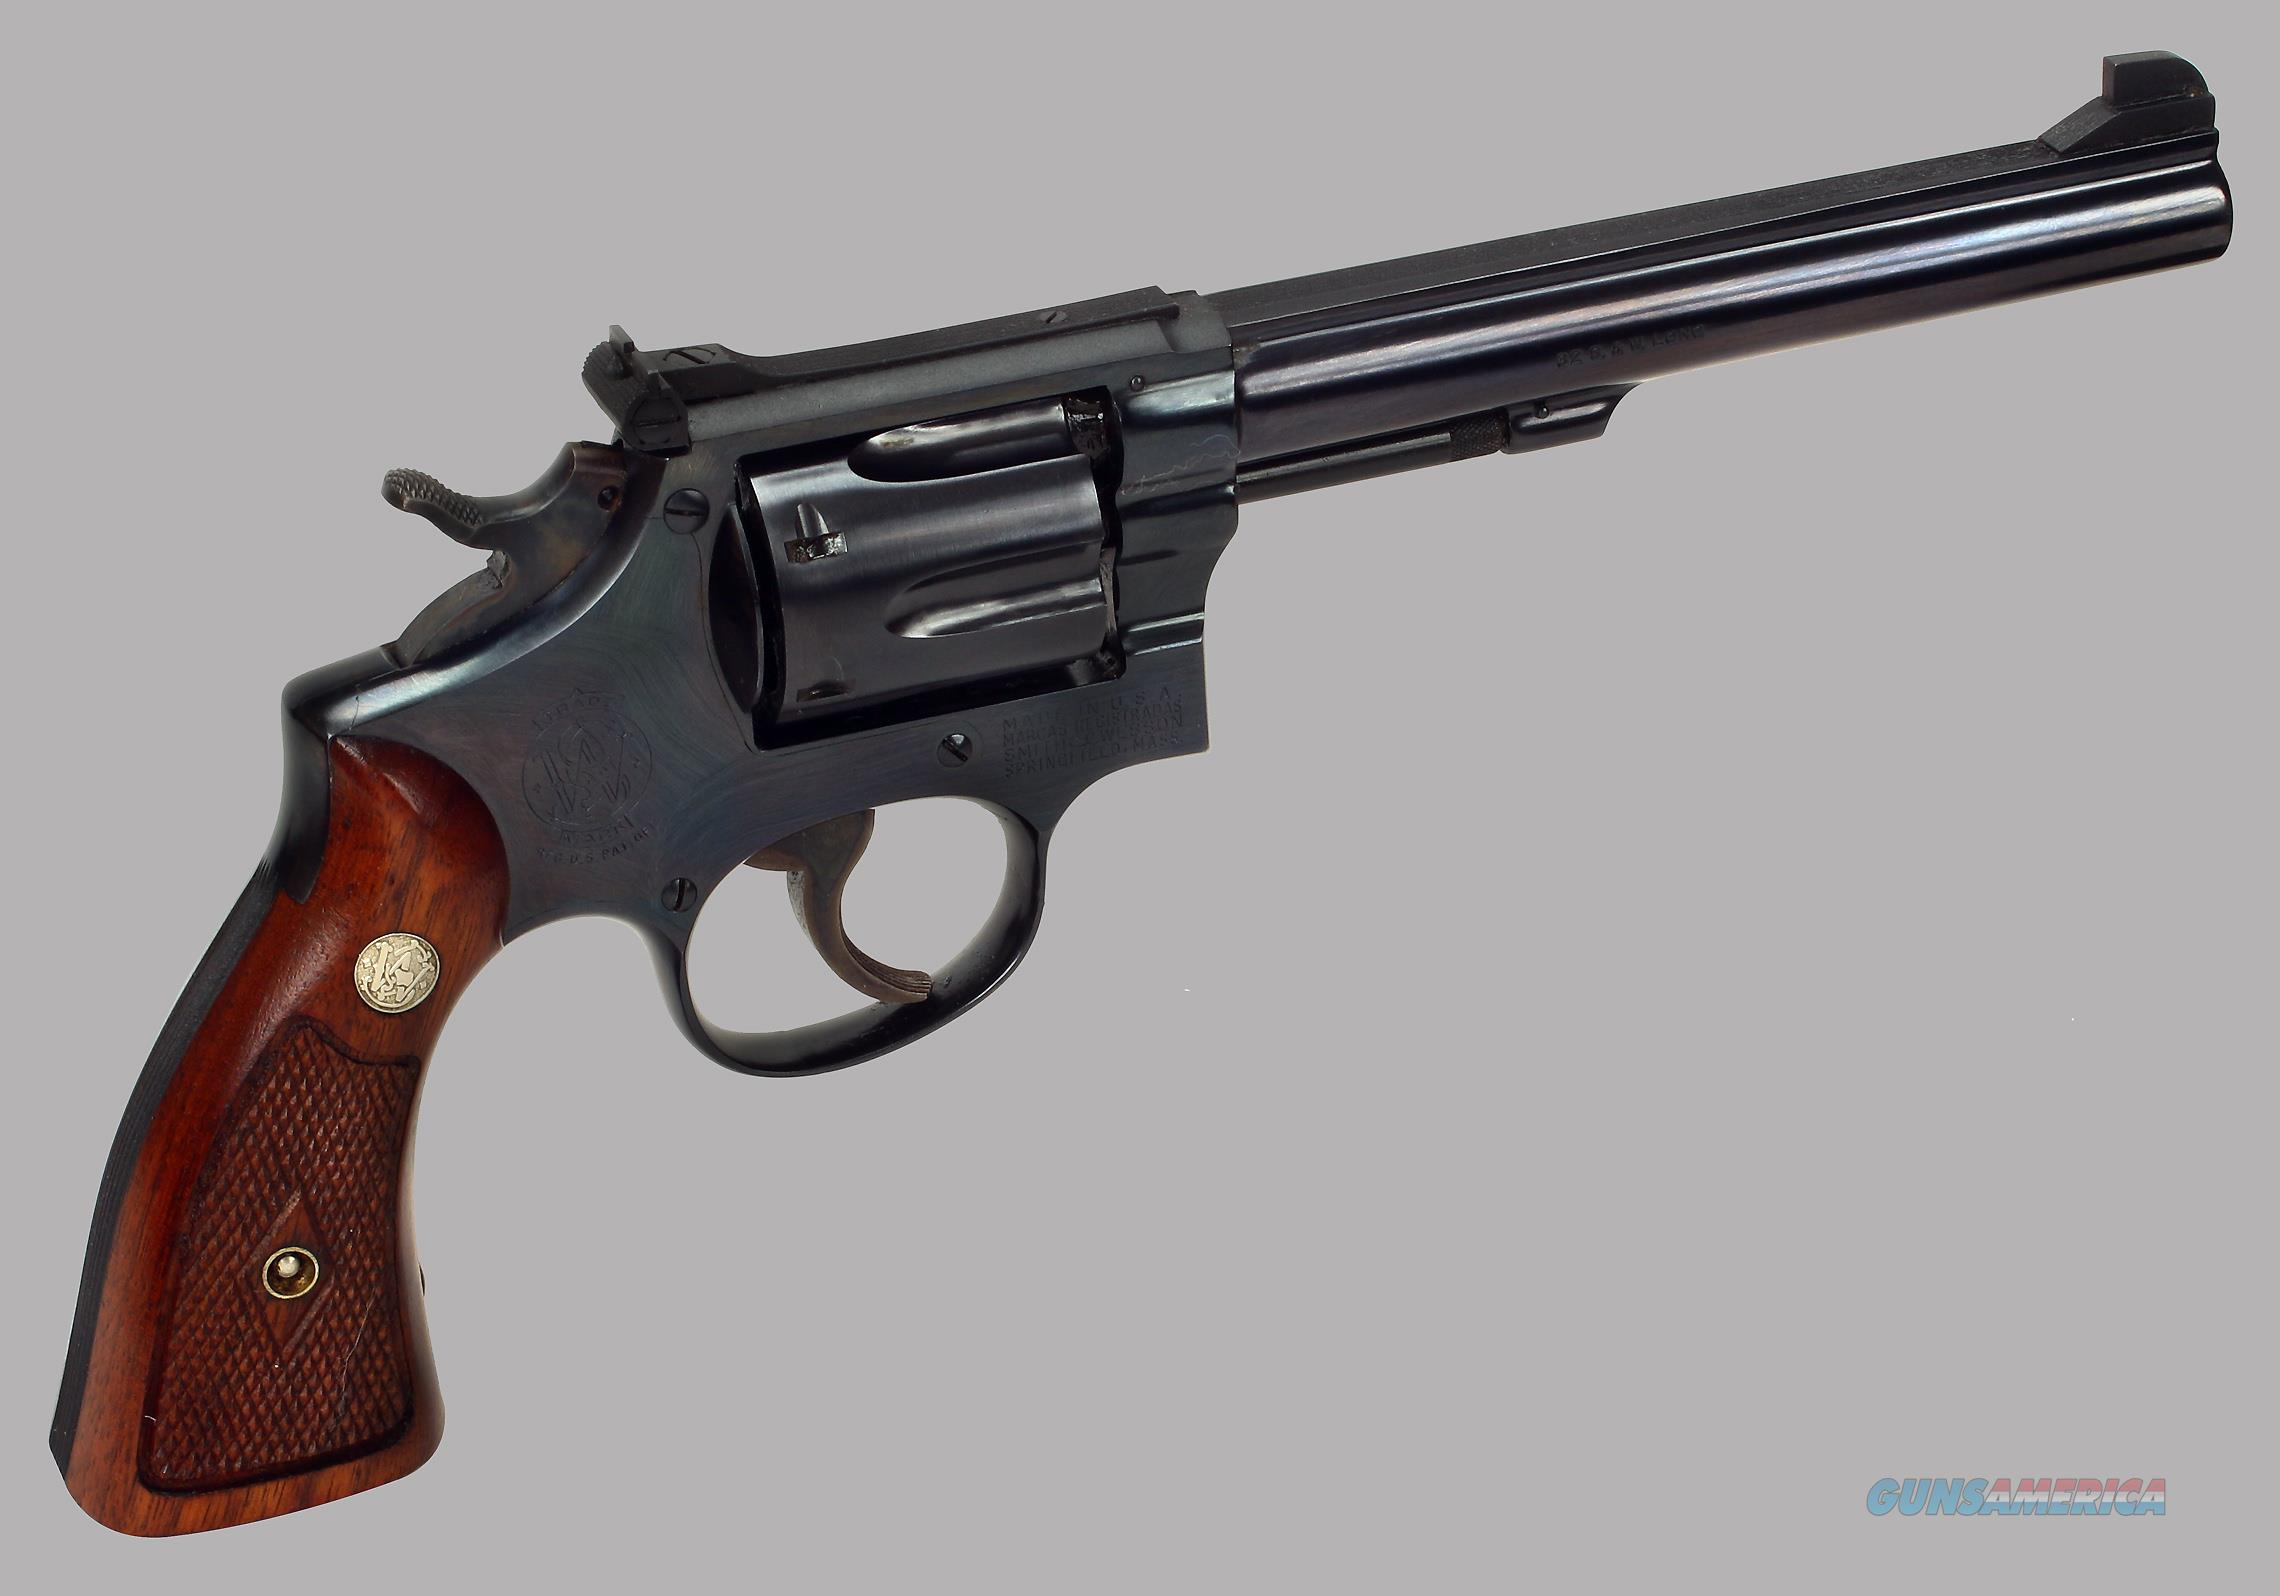 Smith & Wesson Model K32 Masterpiece 32 S&W Long cal Revolver  Guns > Pistols > Smith & Wesson Revolvers > Med. Frame ( K/L )